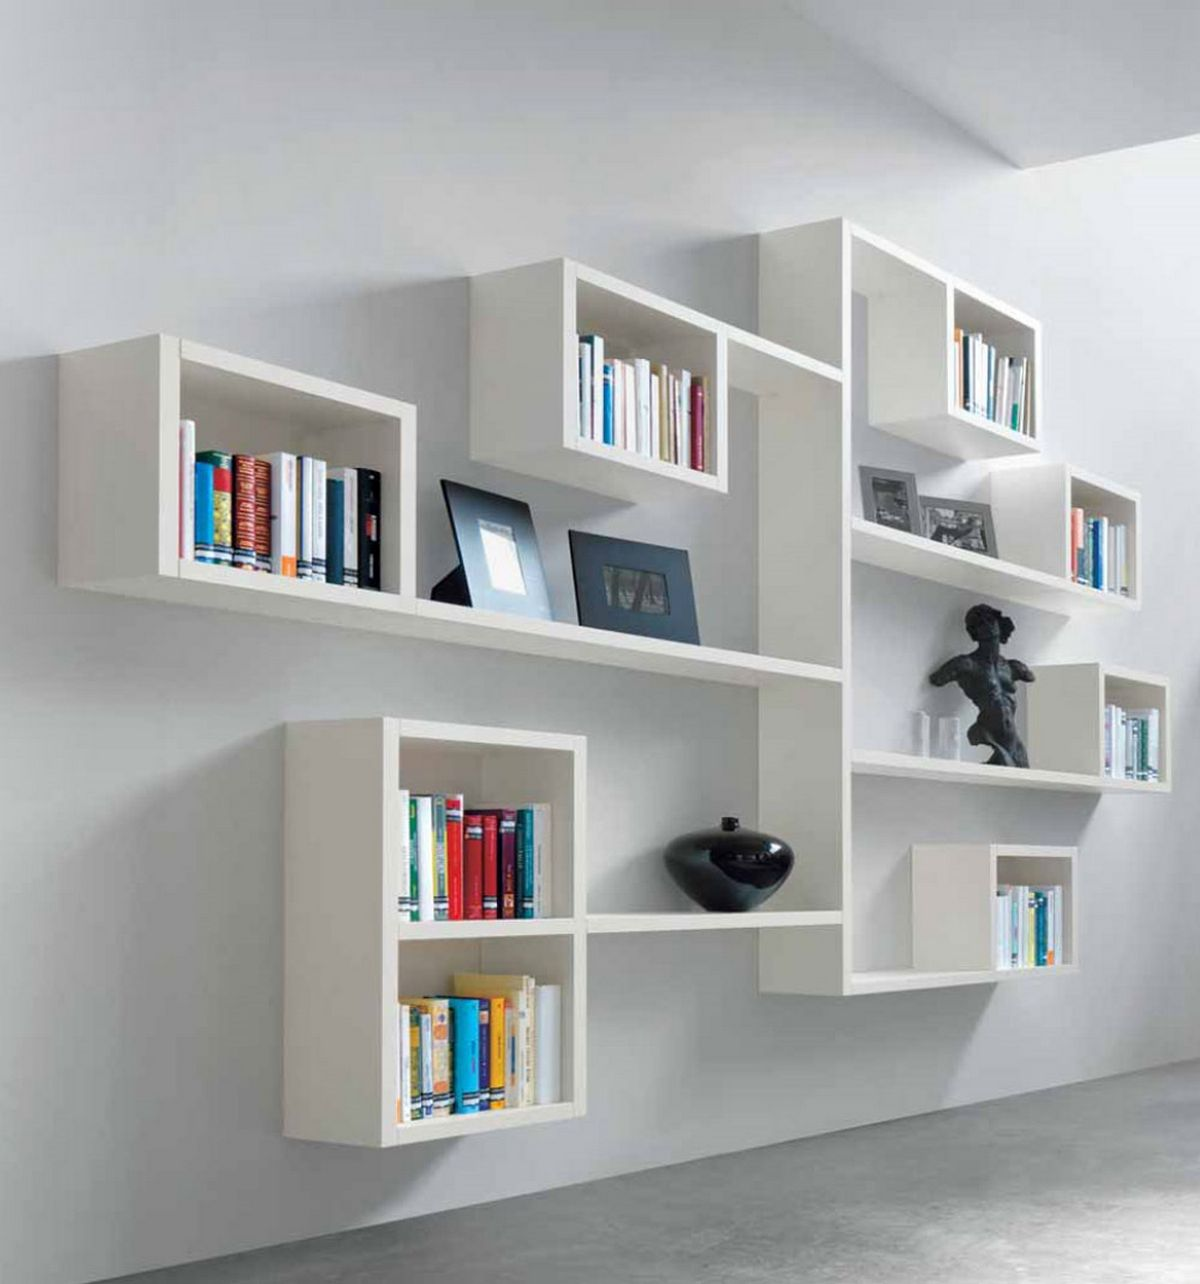 Amazing Sitting Room Interior with Stylish White Oak Wall Mounted Bookshelves on Clean Painted Wall